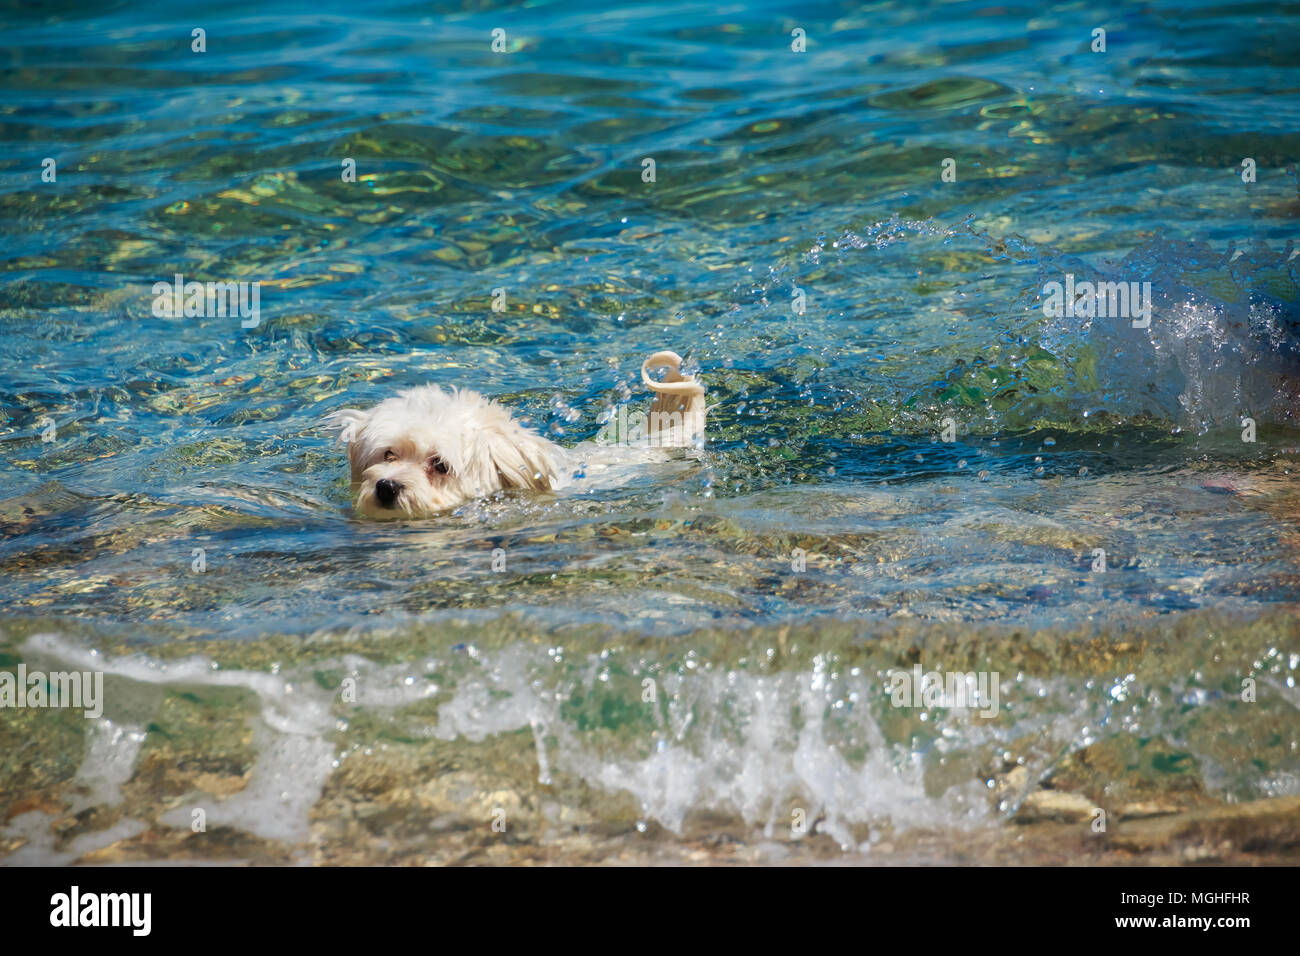 small white dog swimming in the sea. concept about animals and nature, summer sunny weather - Stock Image